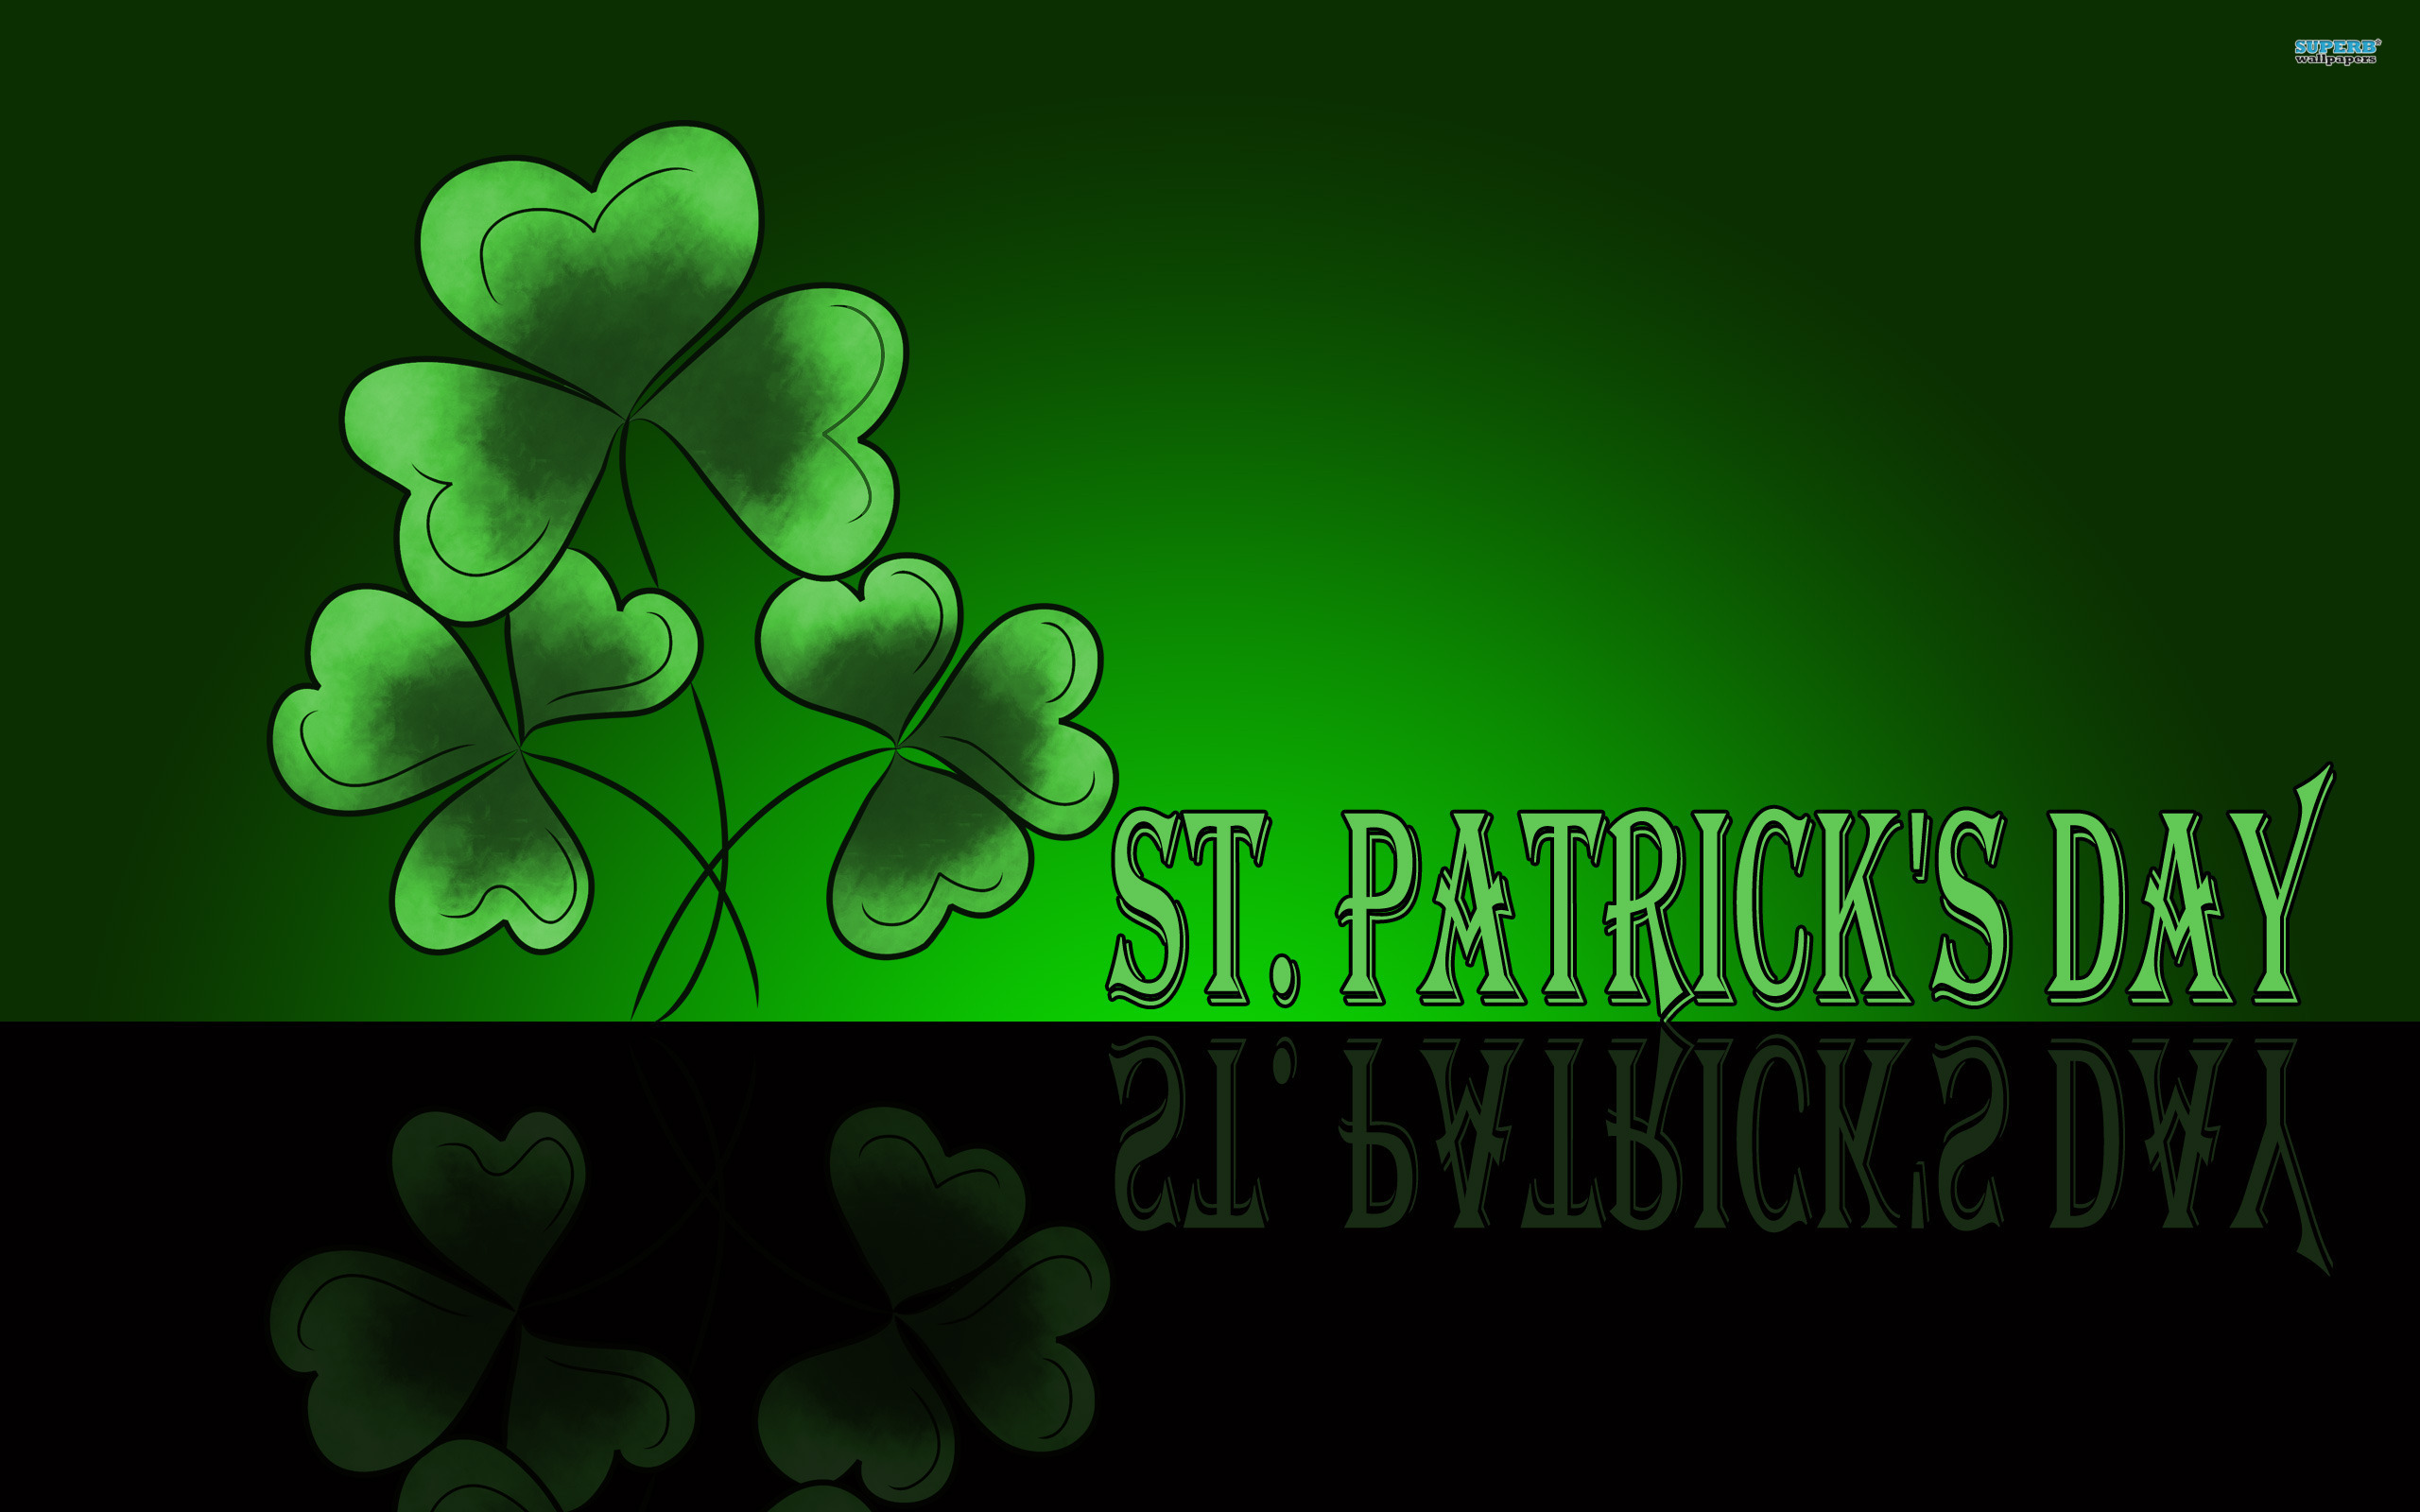 St Patricks Day Wallpapers Backgrounds for My PC 2560x1600